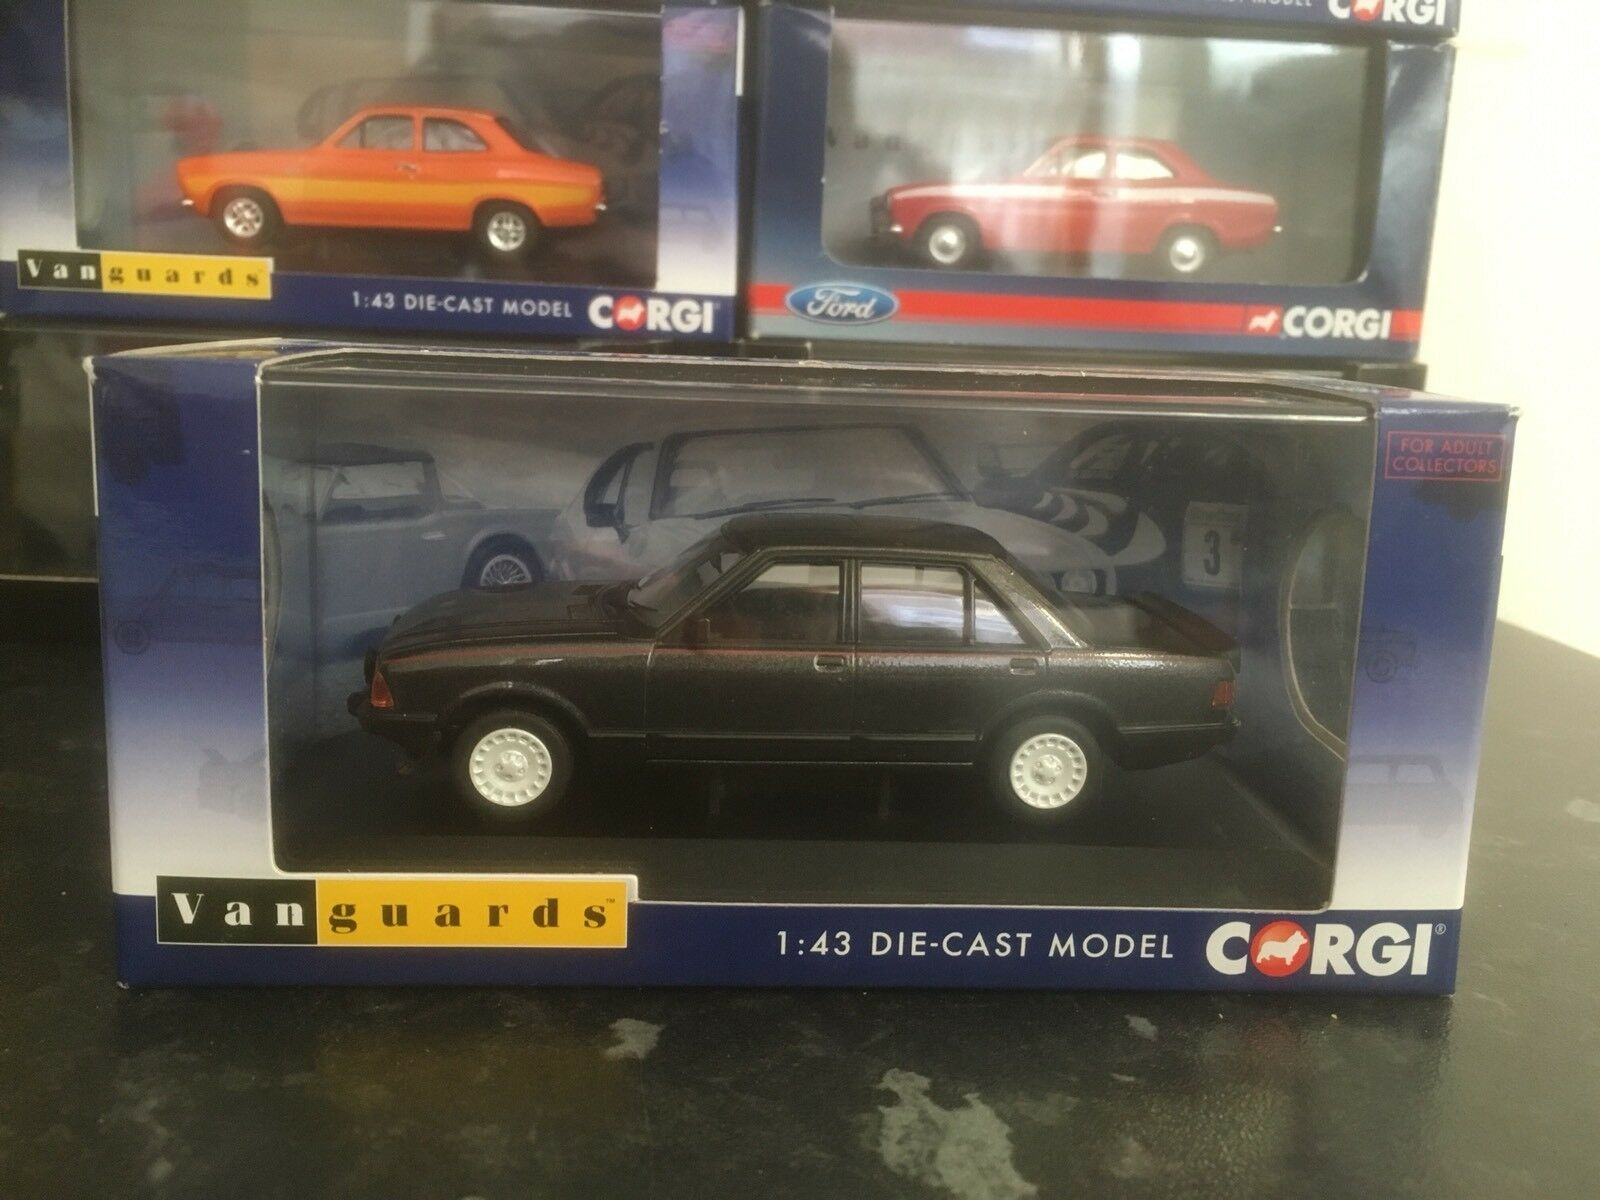 Vanguards Ford Granada Mk2 2.8i Graphite Grey 1 43 MIB Ltd Ed VA12409